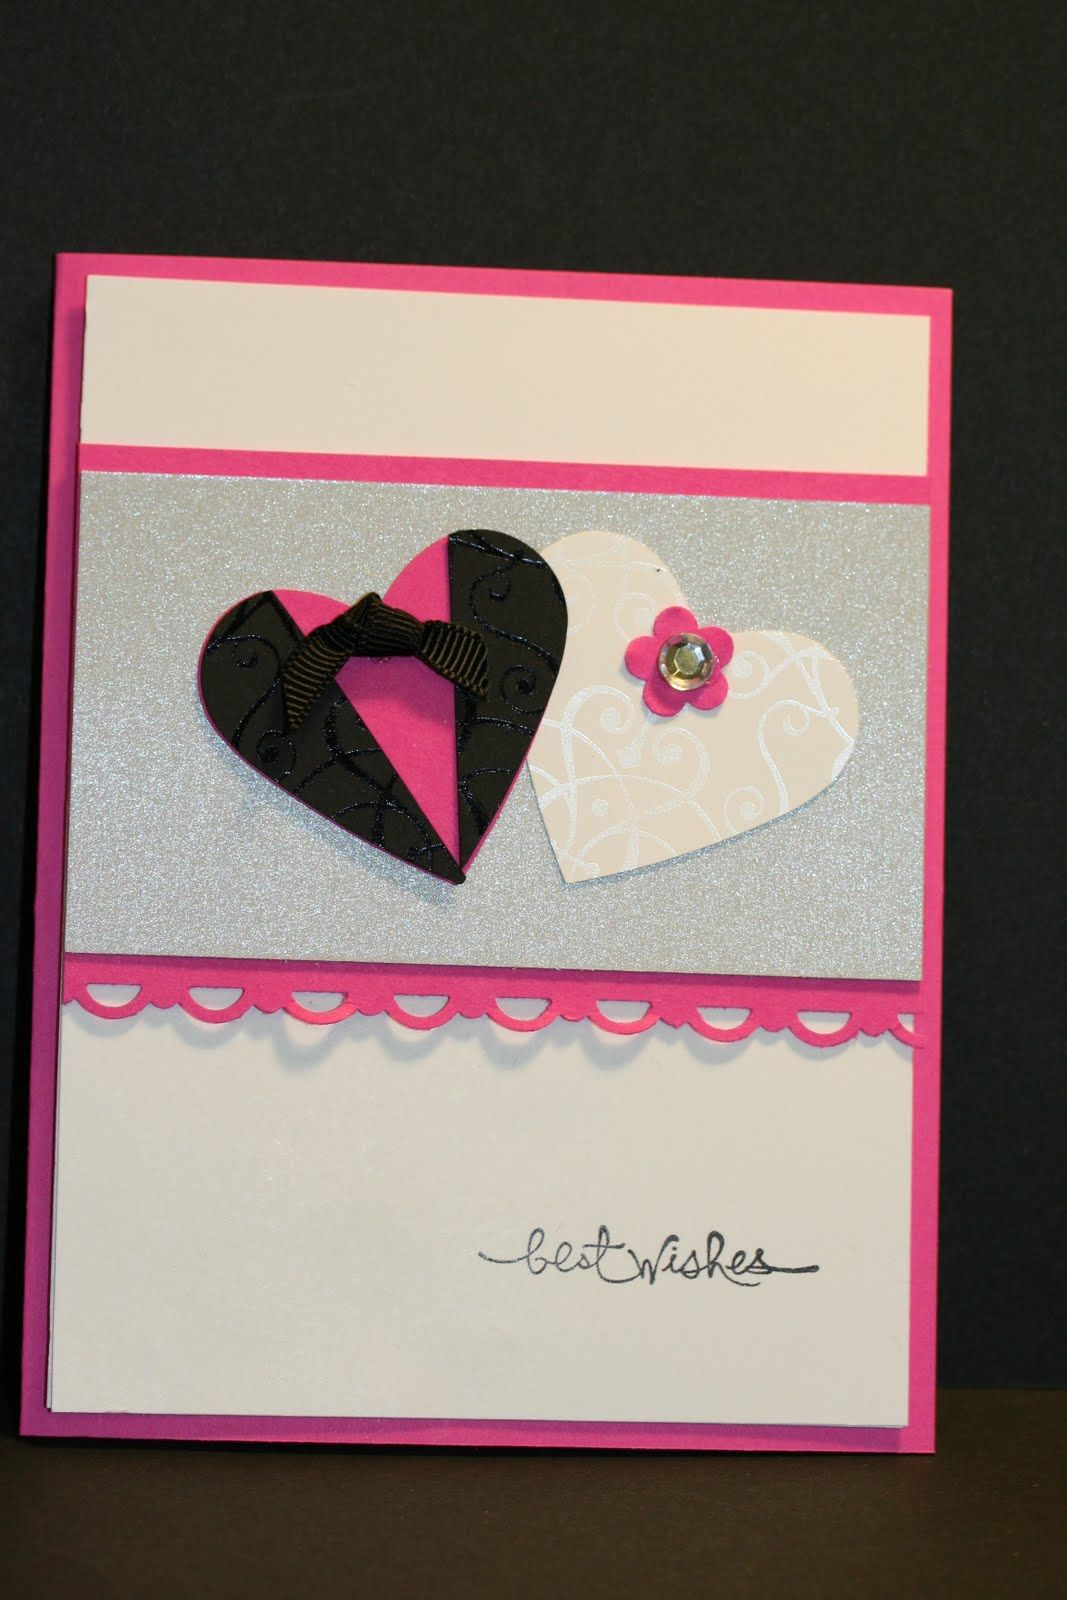 Creative Wedding Card Design With Images Cards Handmade Cards